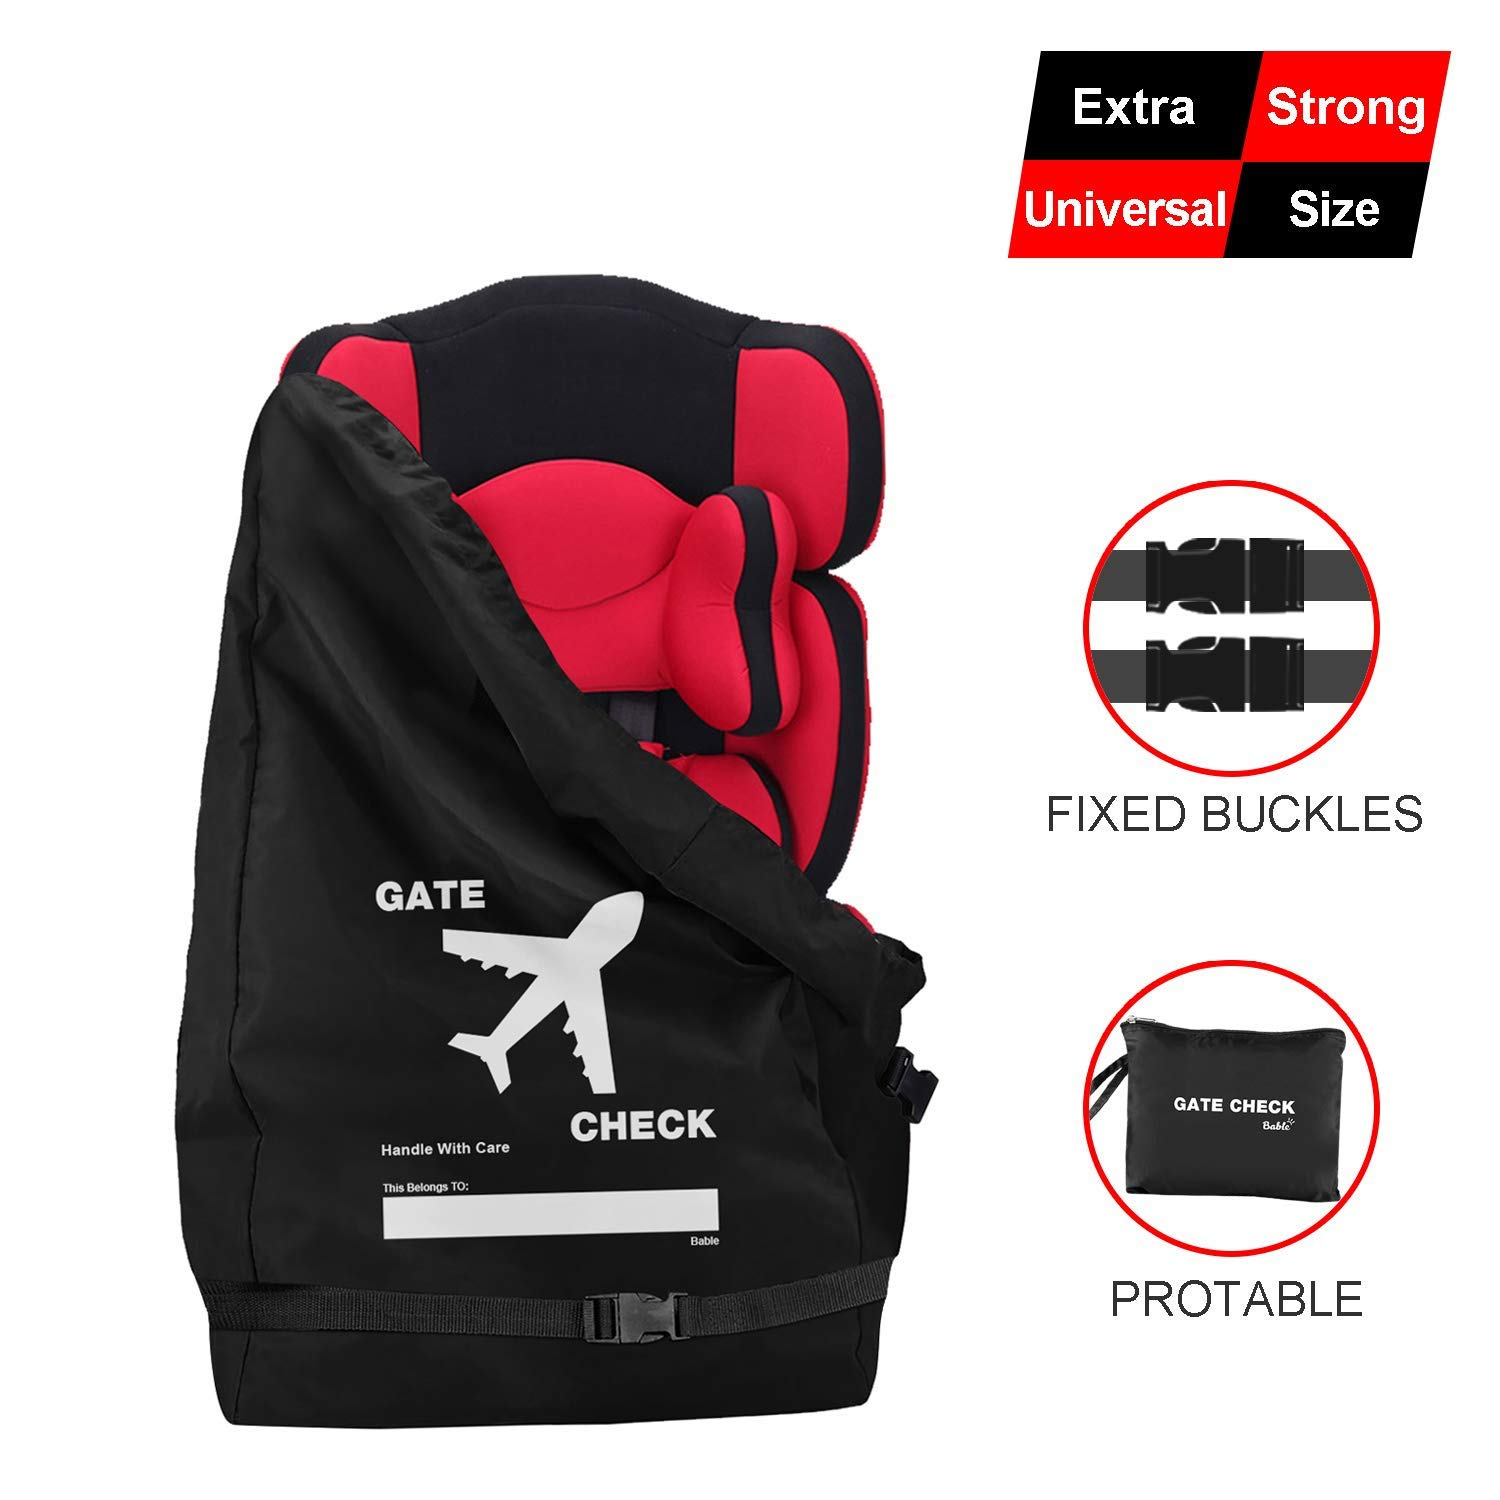 Bable Car Seat Travel Bag, Universal Size Car Seat Cover, Increase Space and Thickness, for Airport Gate Check-in Save Money, Make Traveling Easier, Compatible with Most Name Brand by BABLE